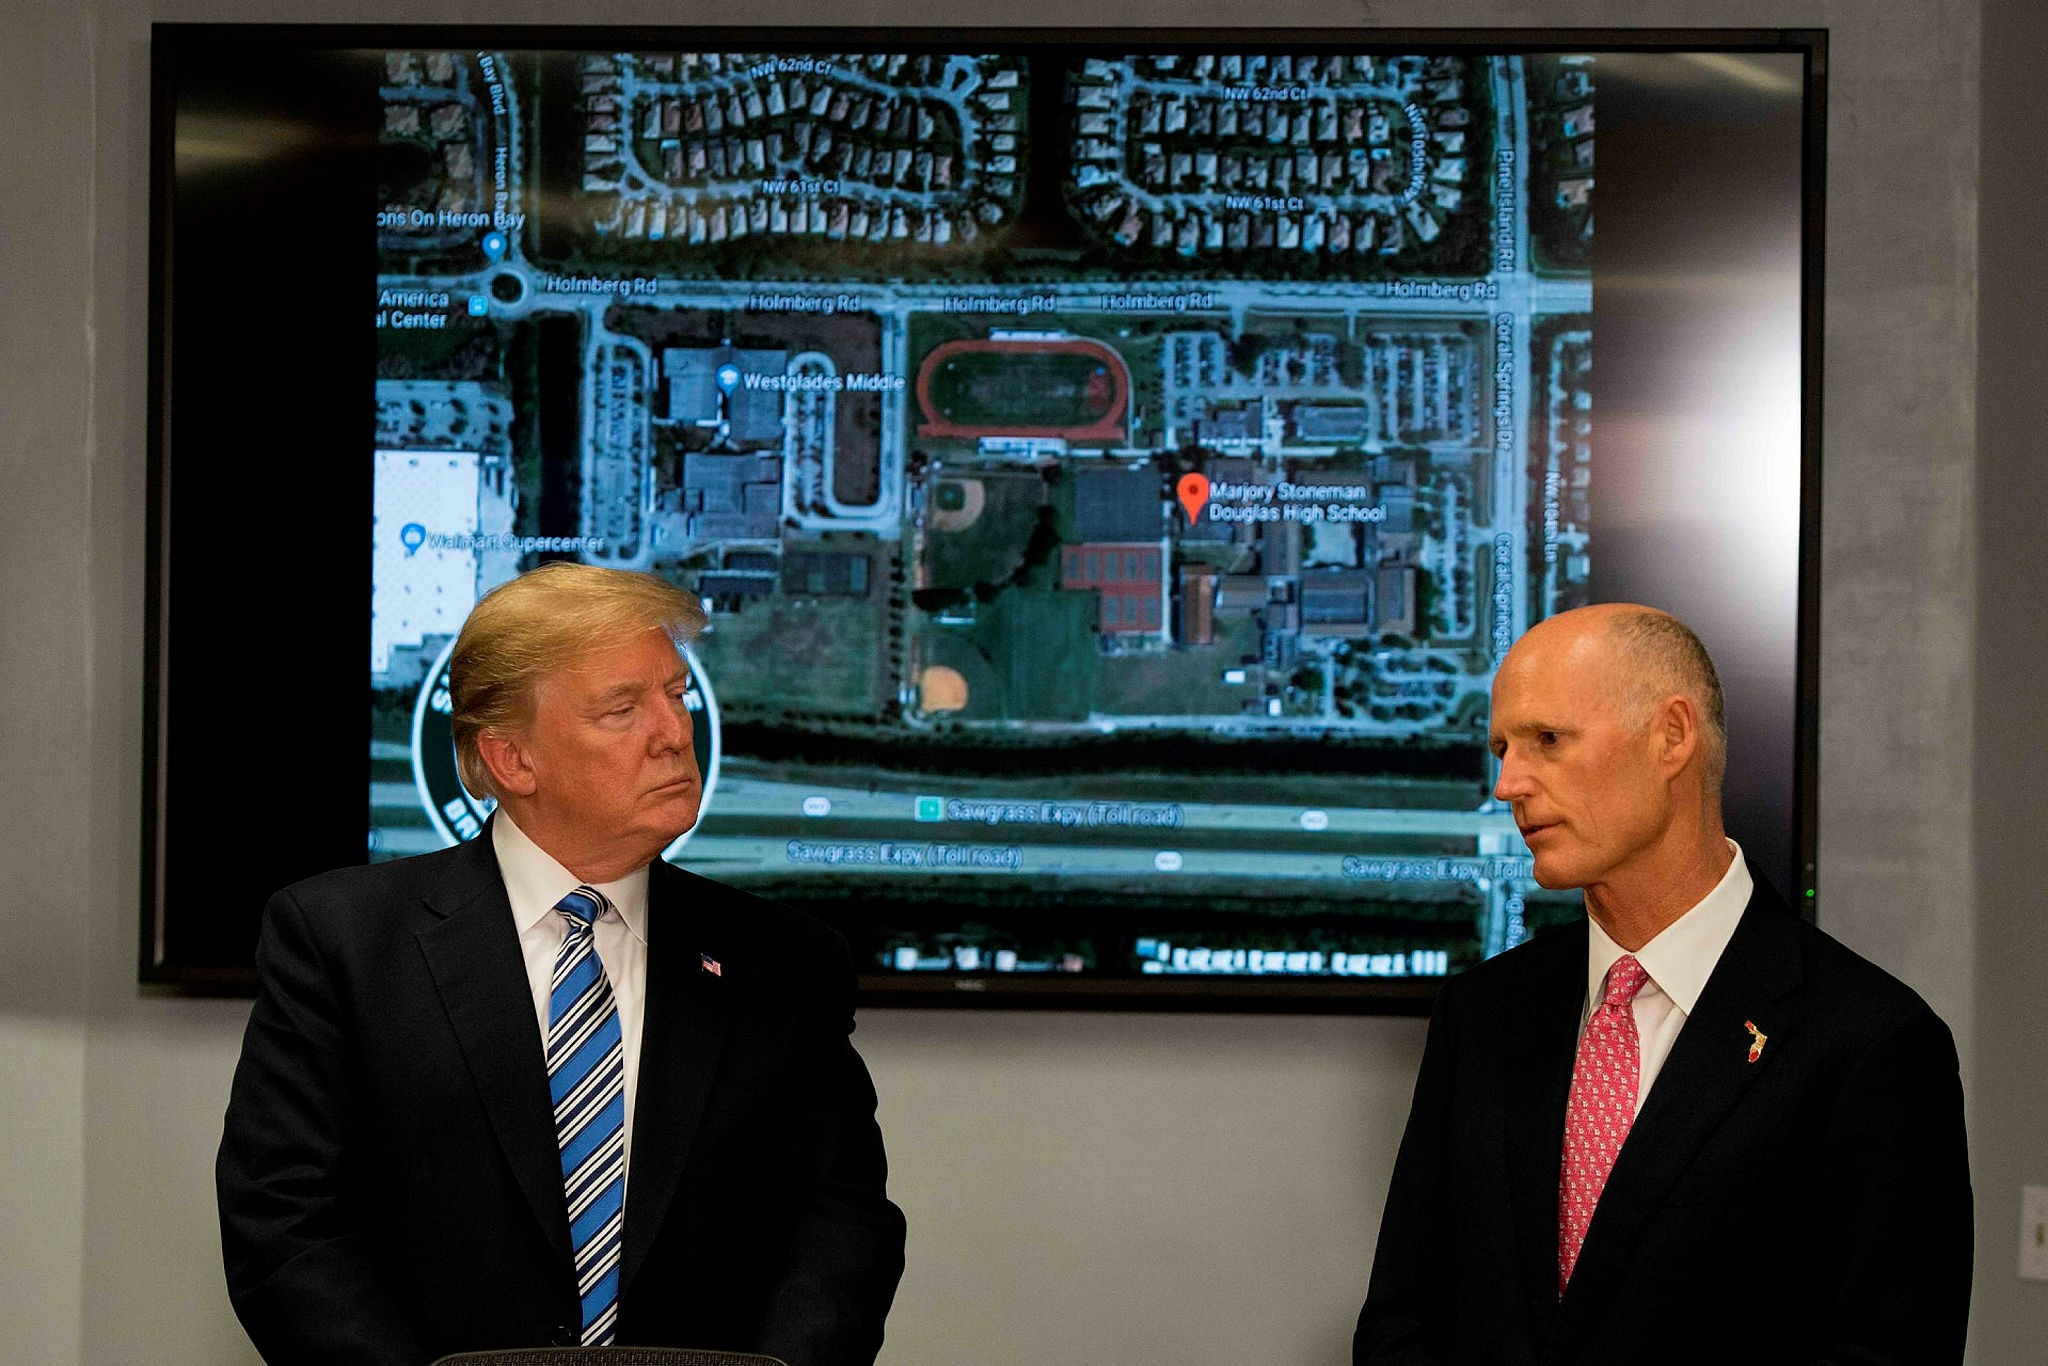 U.S. President Donald Trump (L) speaks with Florida governor Rick Scott while visiting first responders at Broward County Sheriffu2019s Office in Pompano Beach, FL, Feb.16.